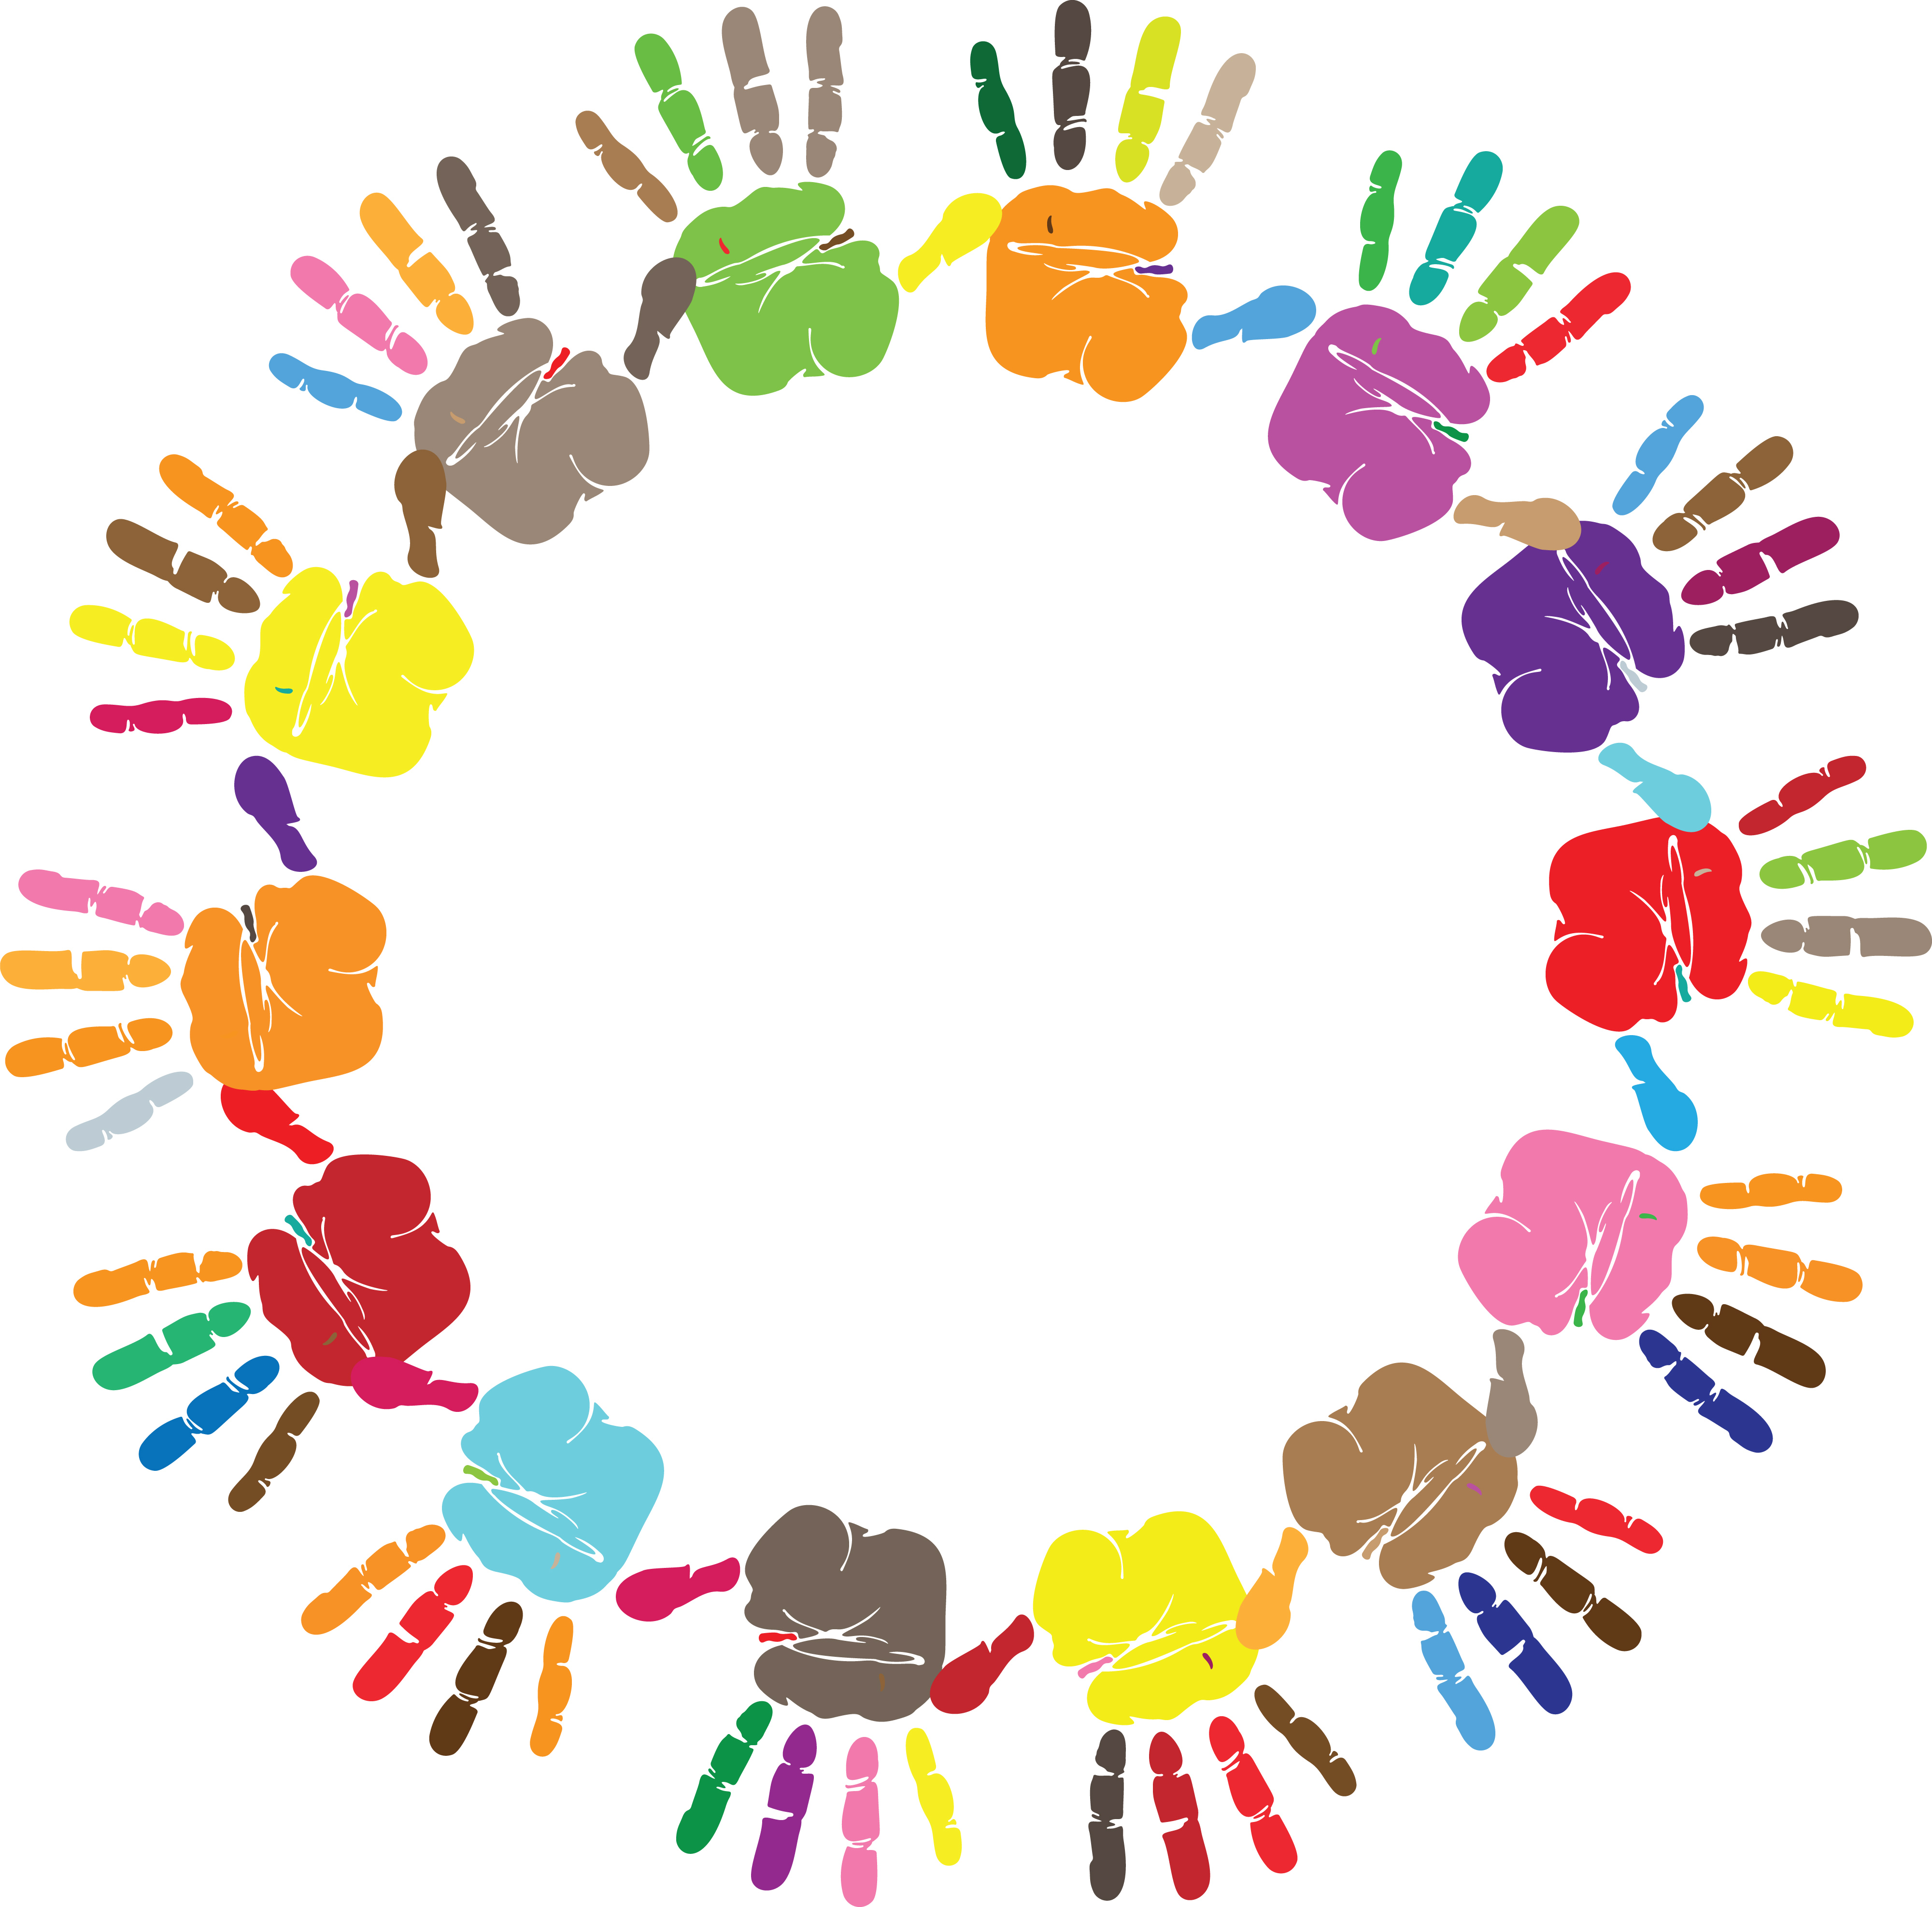 Clipart of a Round Frame of HandPrints in Color.